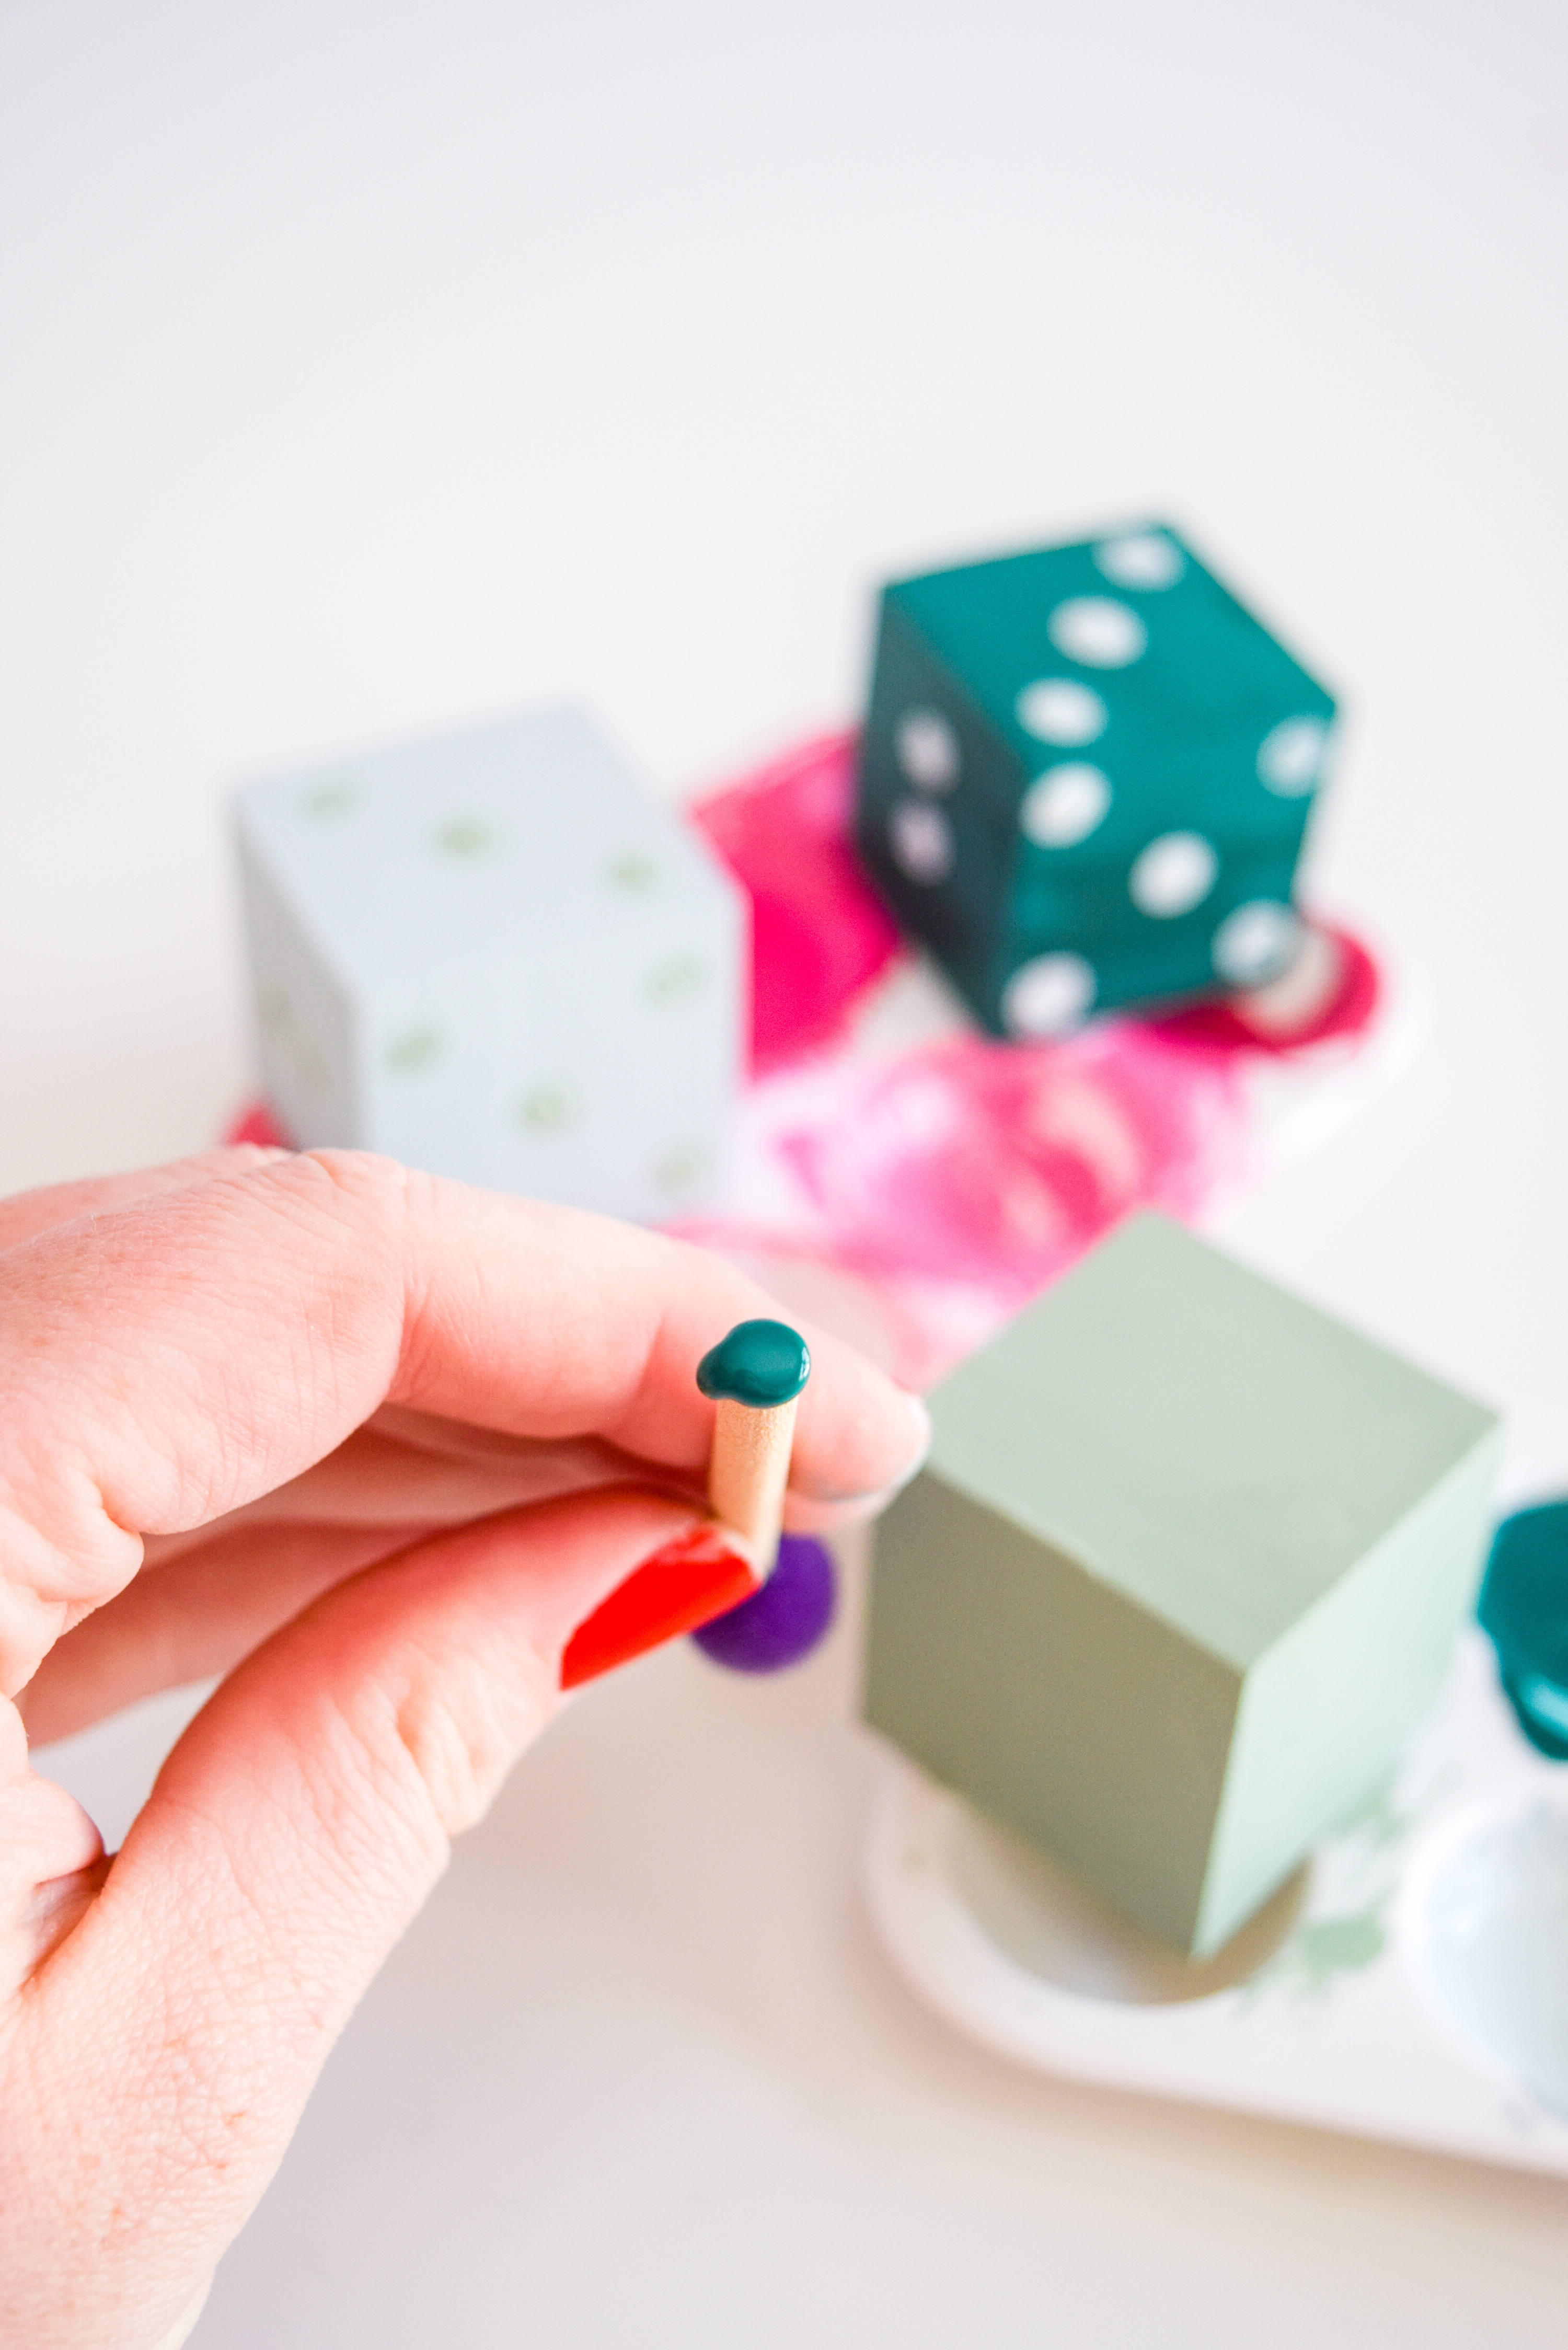 Shake my Painted Decorative Dice! Maybe lady luck will be on your side, with this cheeky tribute to your board game loving hearts.